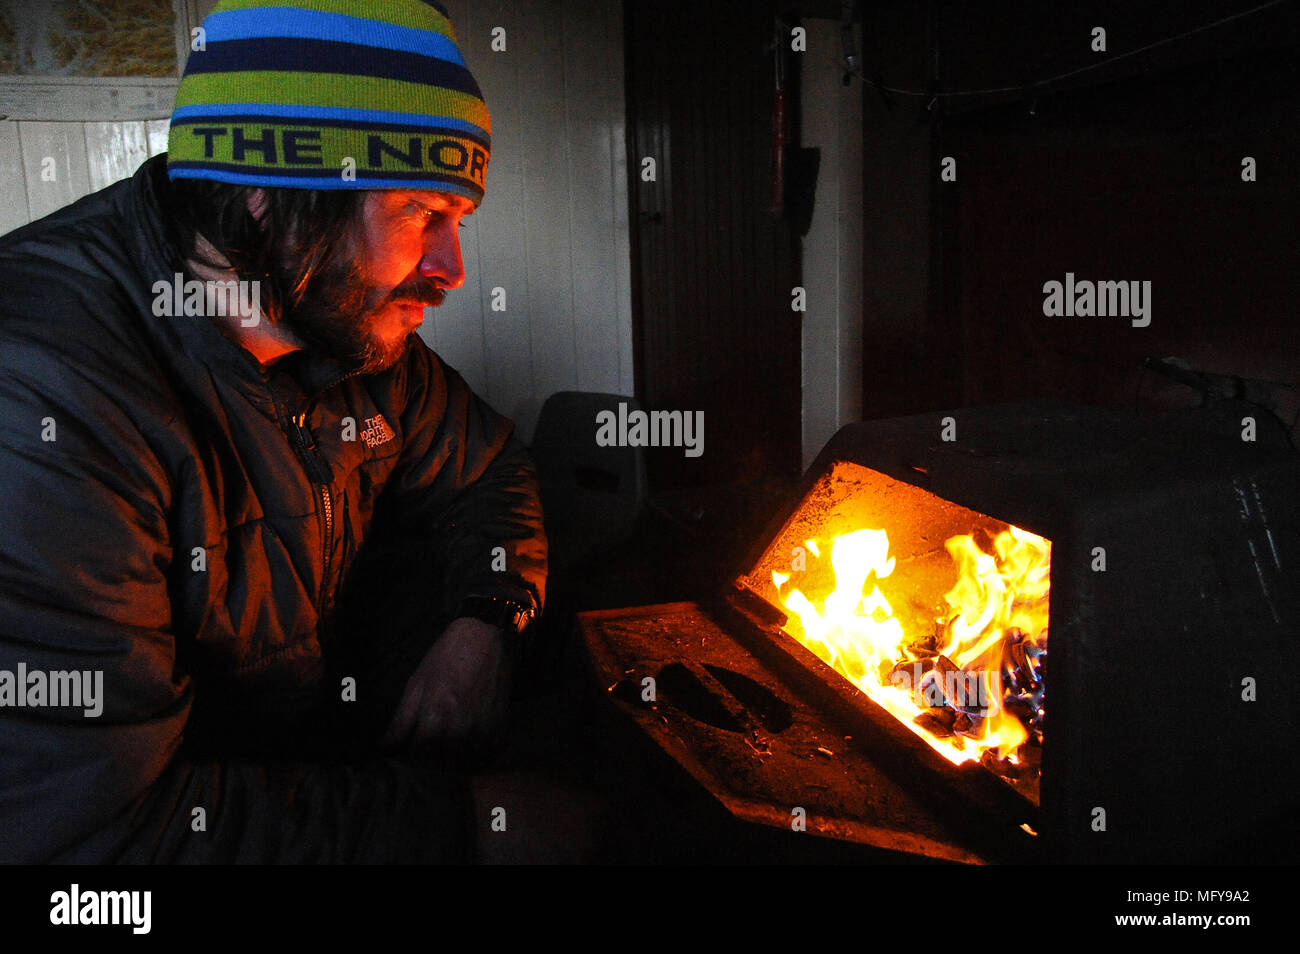 Wood Burner Stock Photos Amp Wood Burner Stock Images Alamy